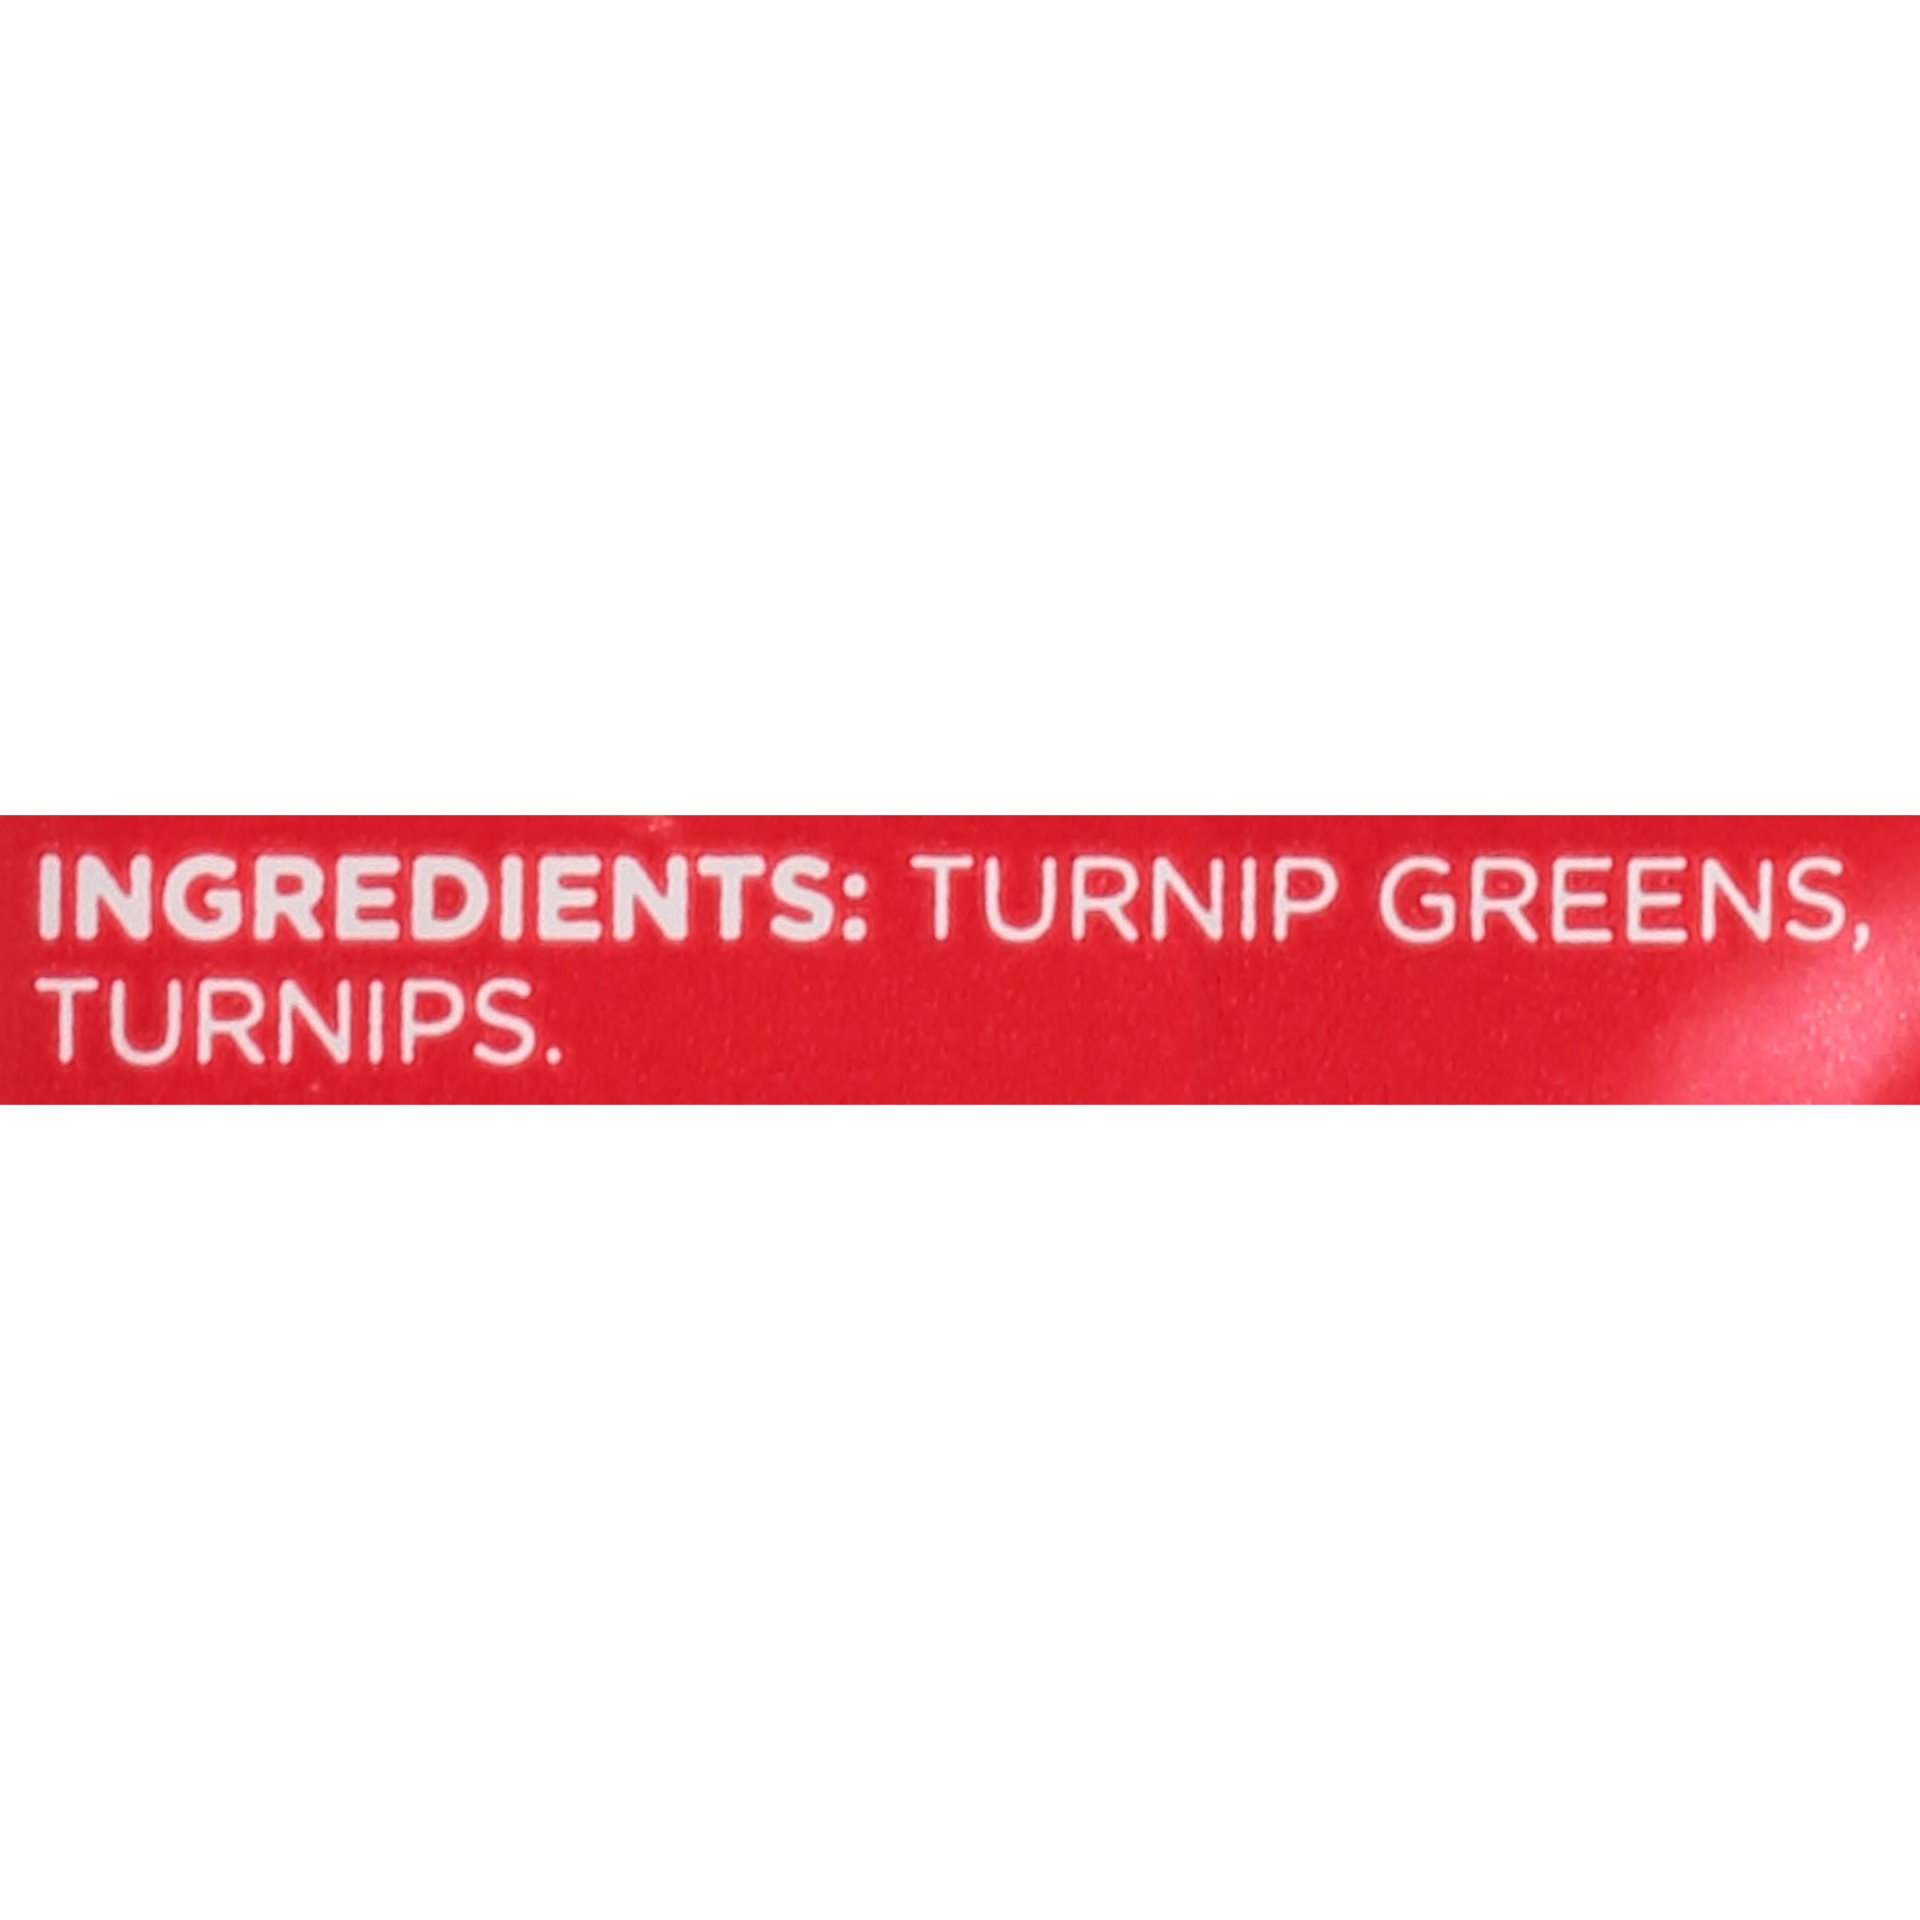 slide 8 of 8, PictSweet Southern Classics Turnip Greens with Diced Turnips,